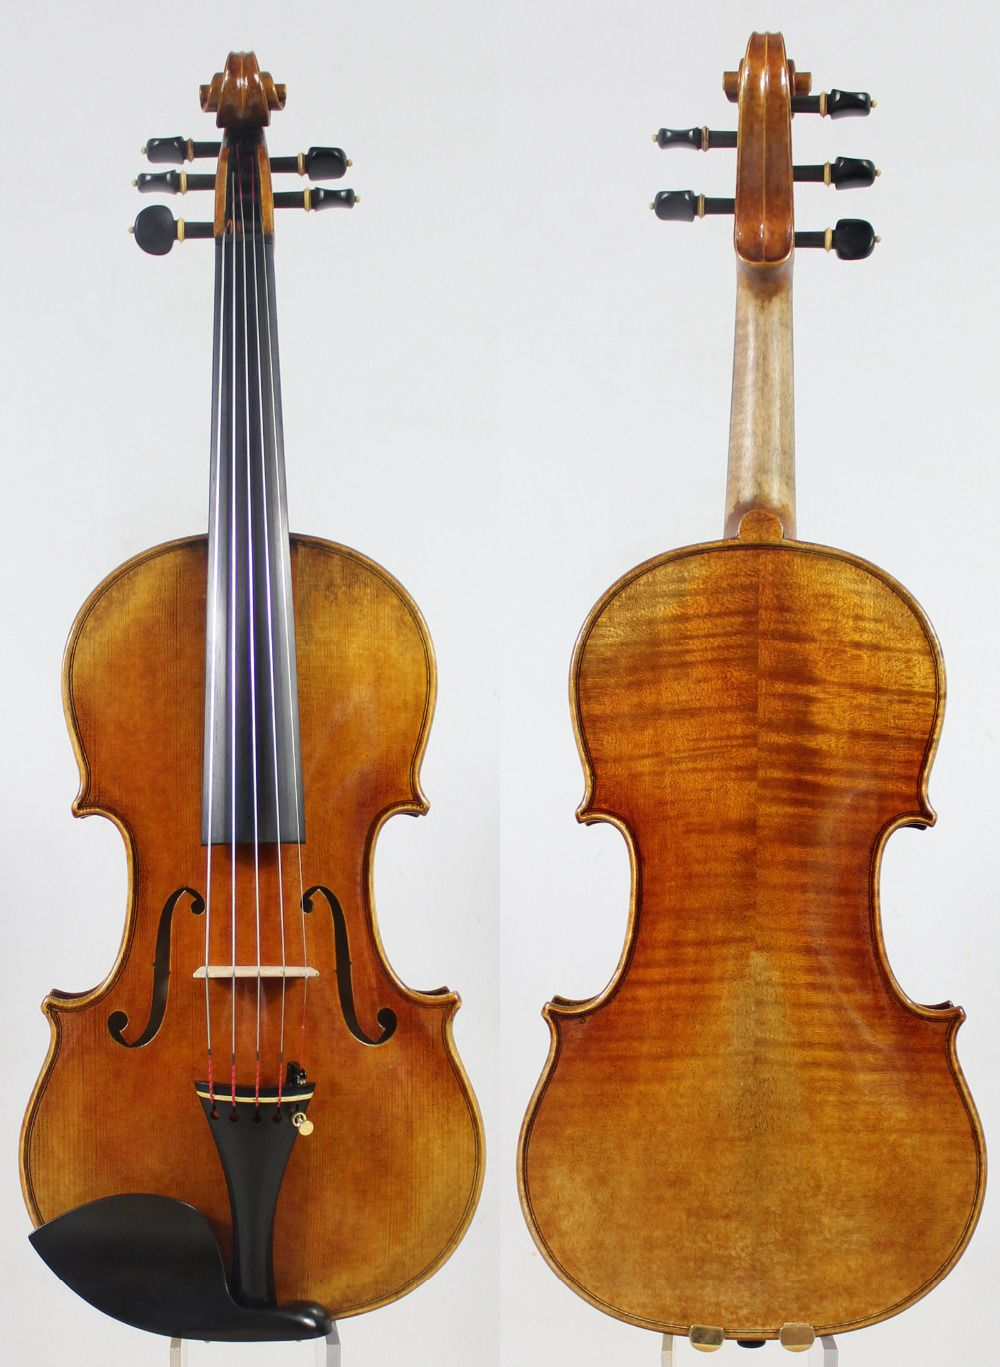 5 Strings Violin violino!Copy Stradivari 1715 Model! Antiqued oil vamish.Master Tone!Case Bow Rosin!Free Shipping!Aubert Bridge!